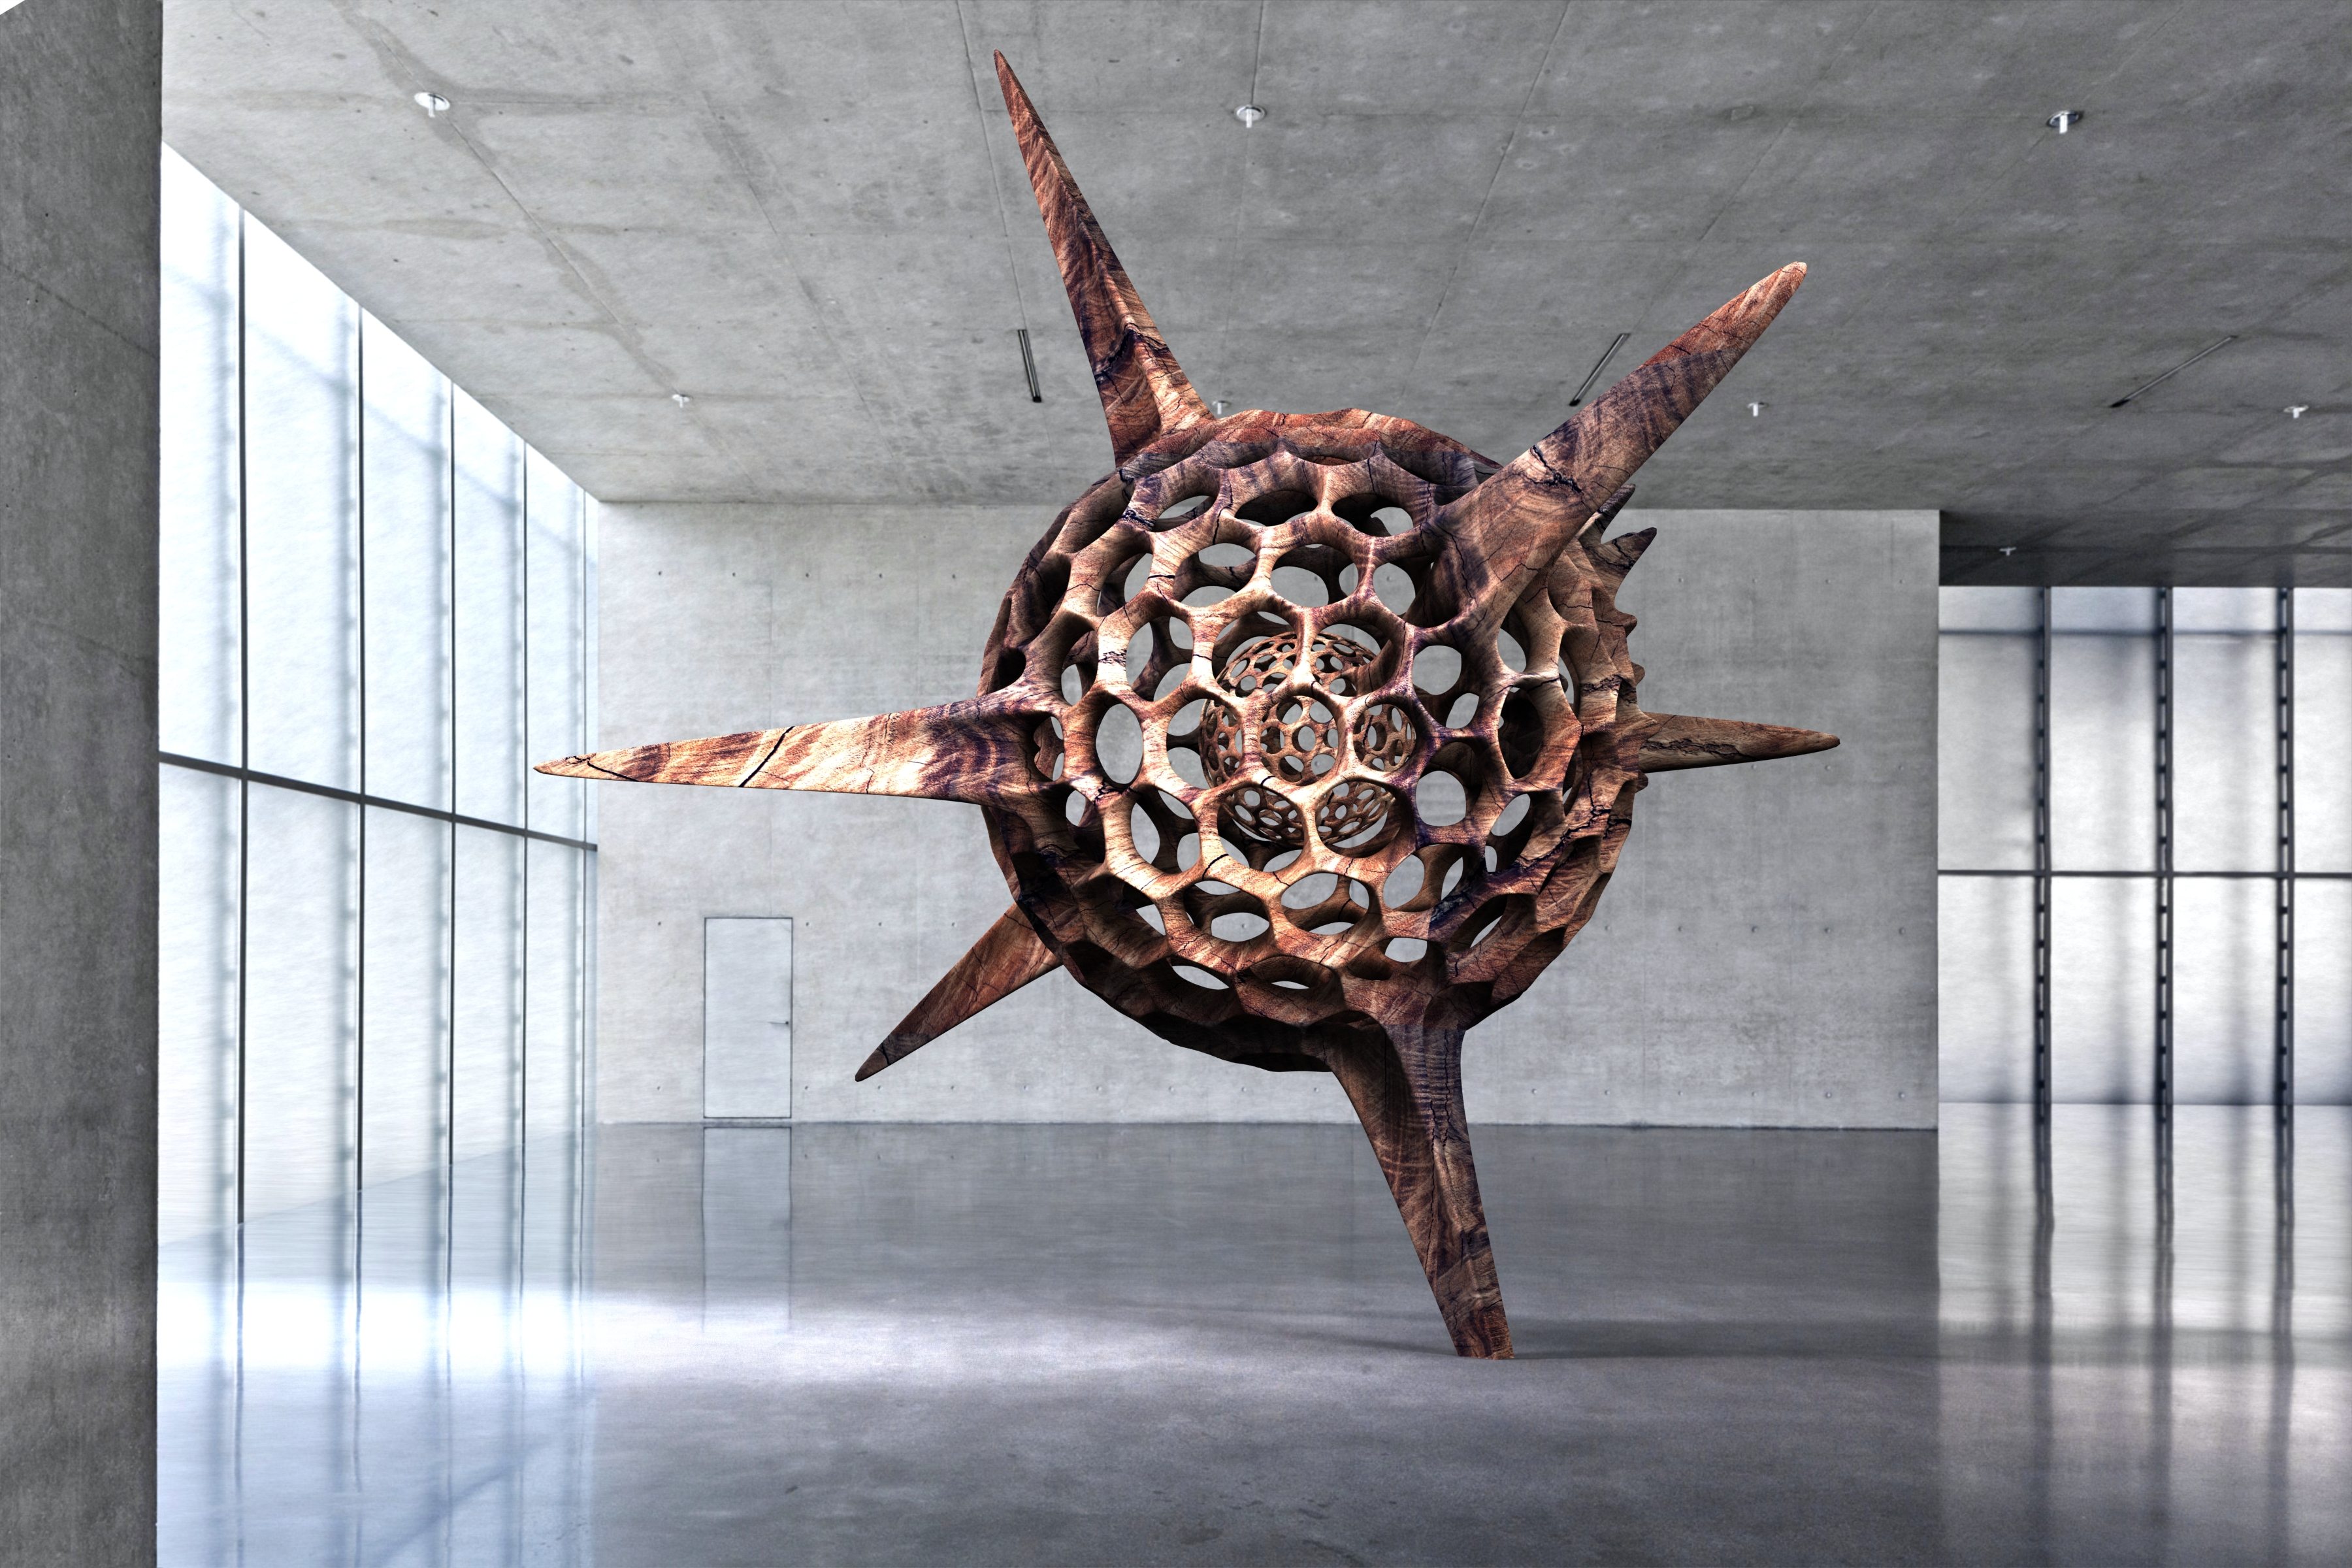 Kunsthaus Bregenz Contemporary Sculpture face off KUB Architecture Radiolarian Science Sea Creature 2